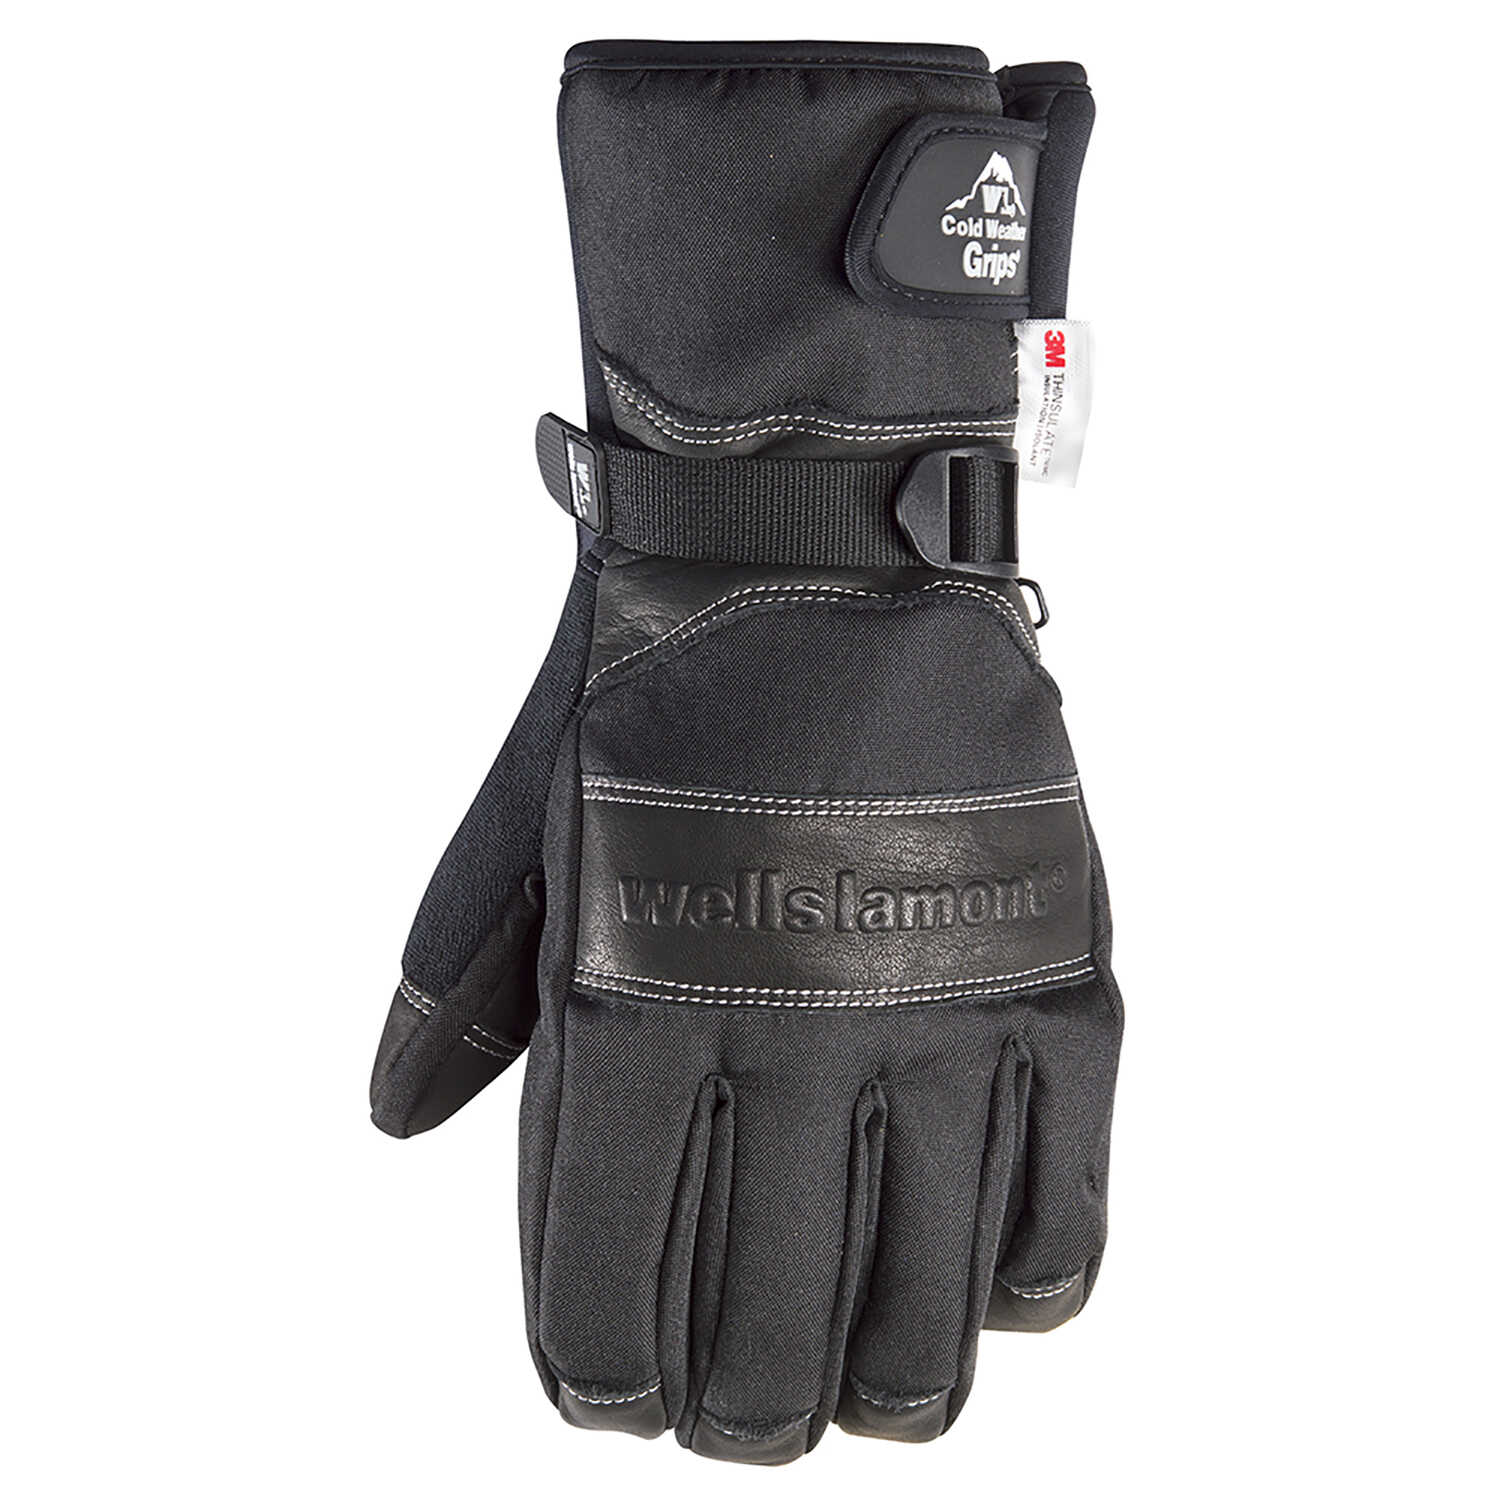 Wells Lamont  XL  Cowhide Leather  Winter  Black/Tan  Gloves